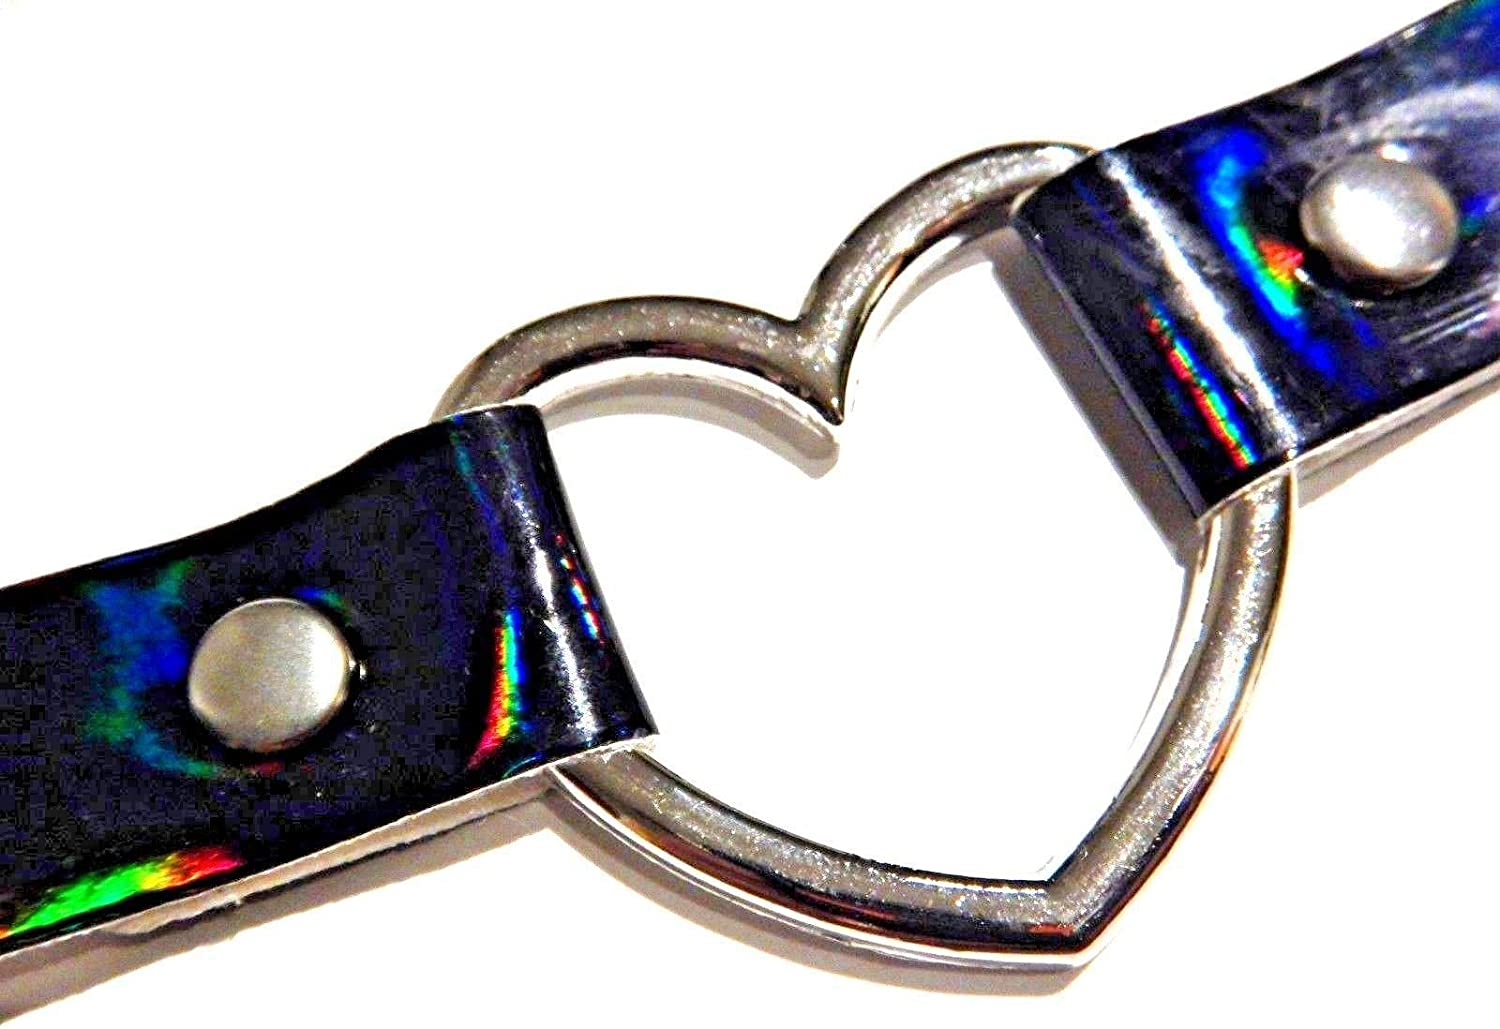 Holographic Vinyl Band Choker Collar with Heart Ring in Lavender or Black Prismatic Hologram Rainbow